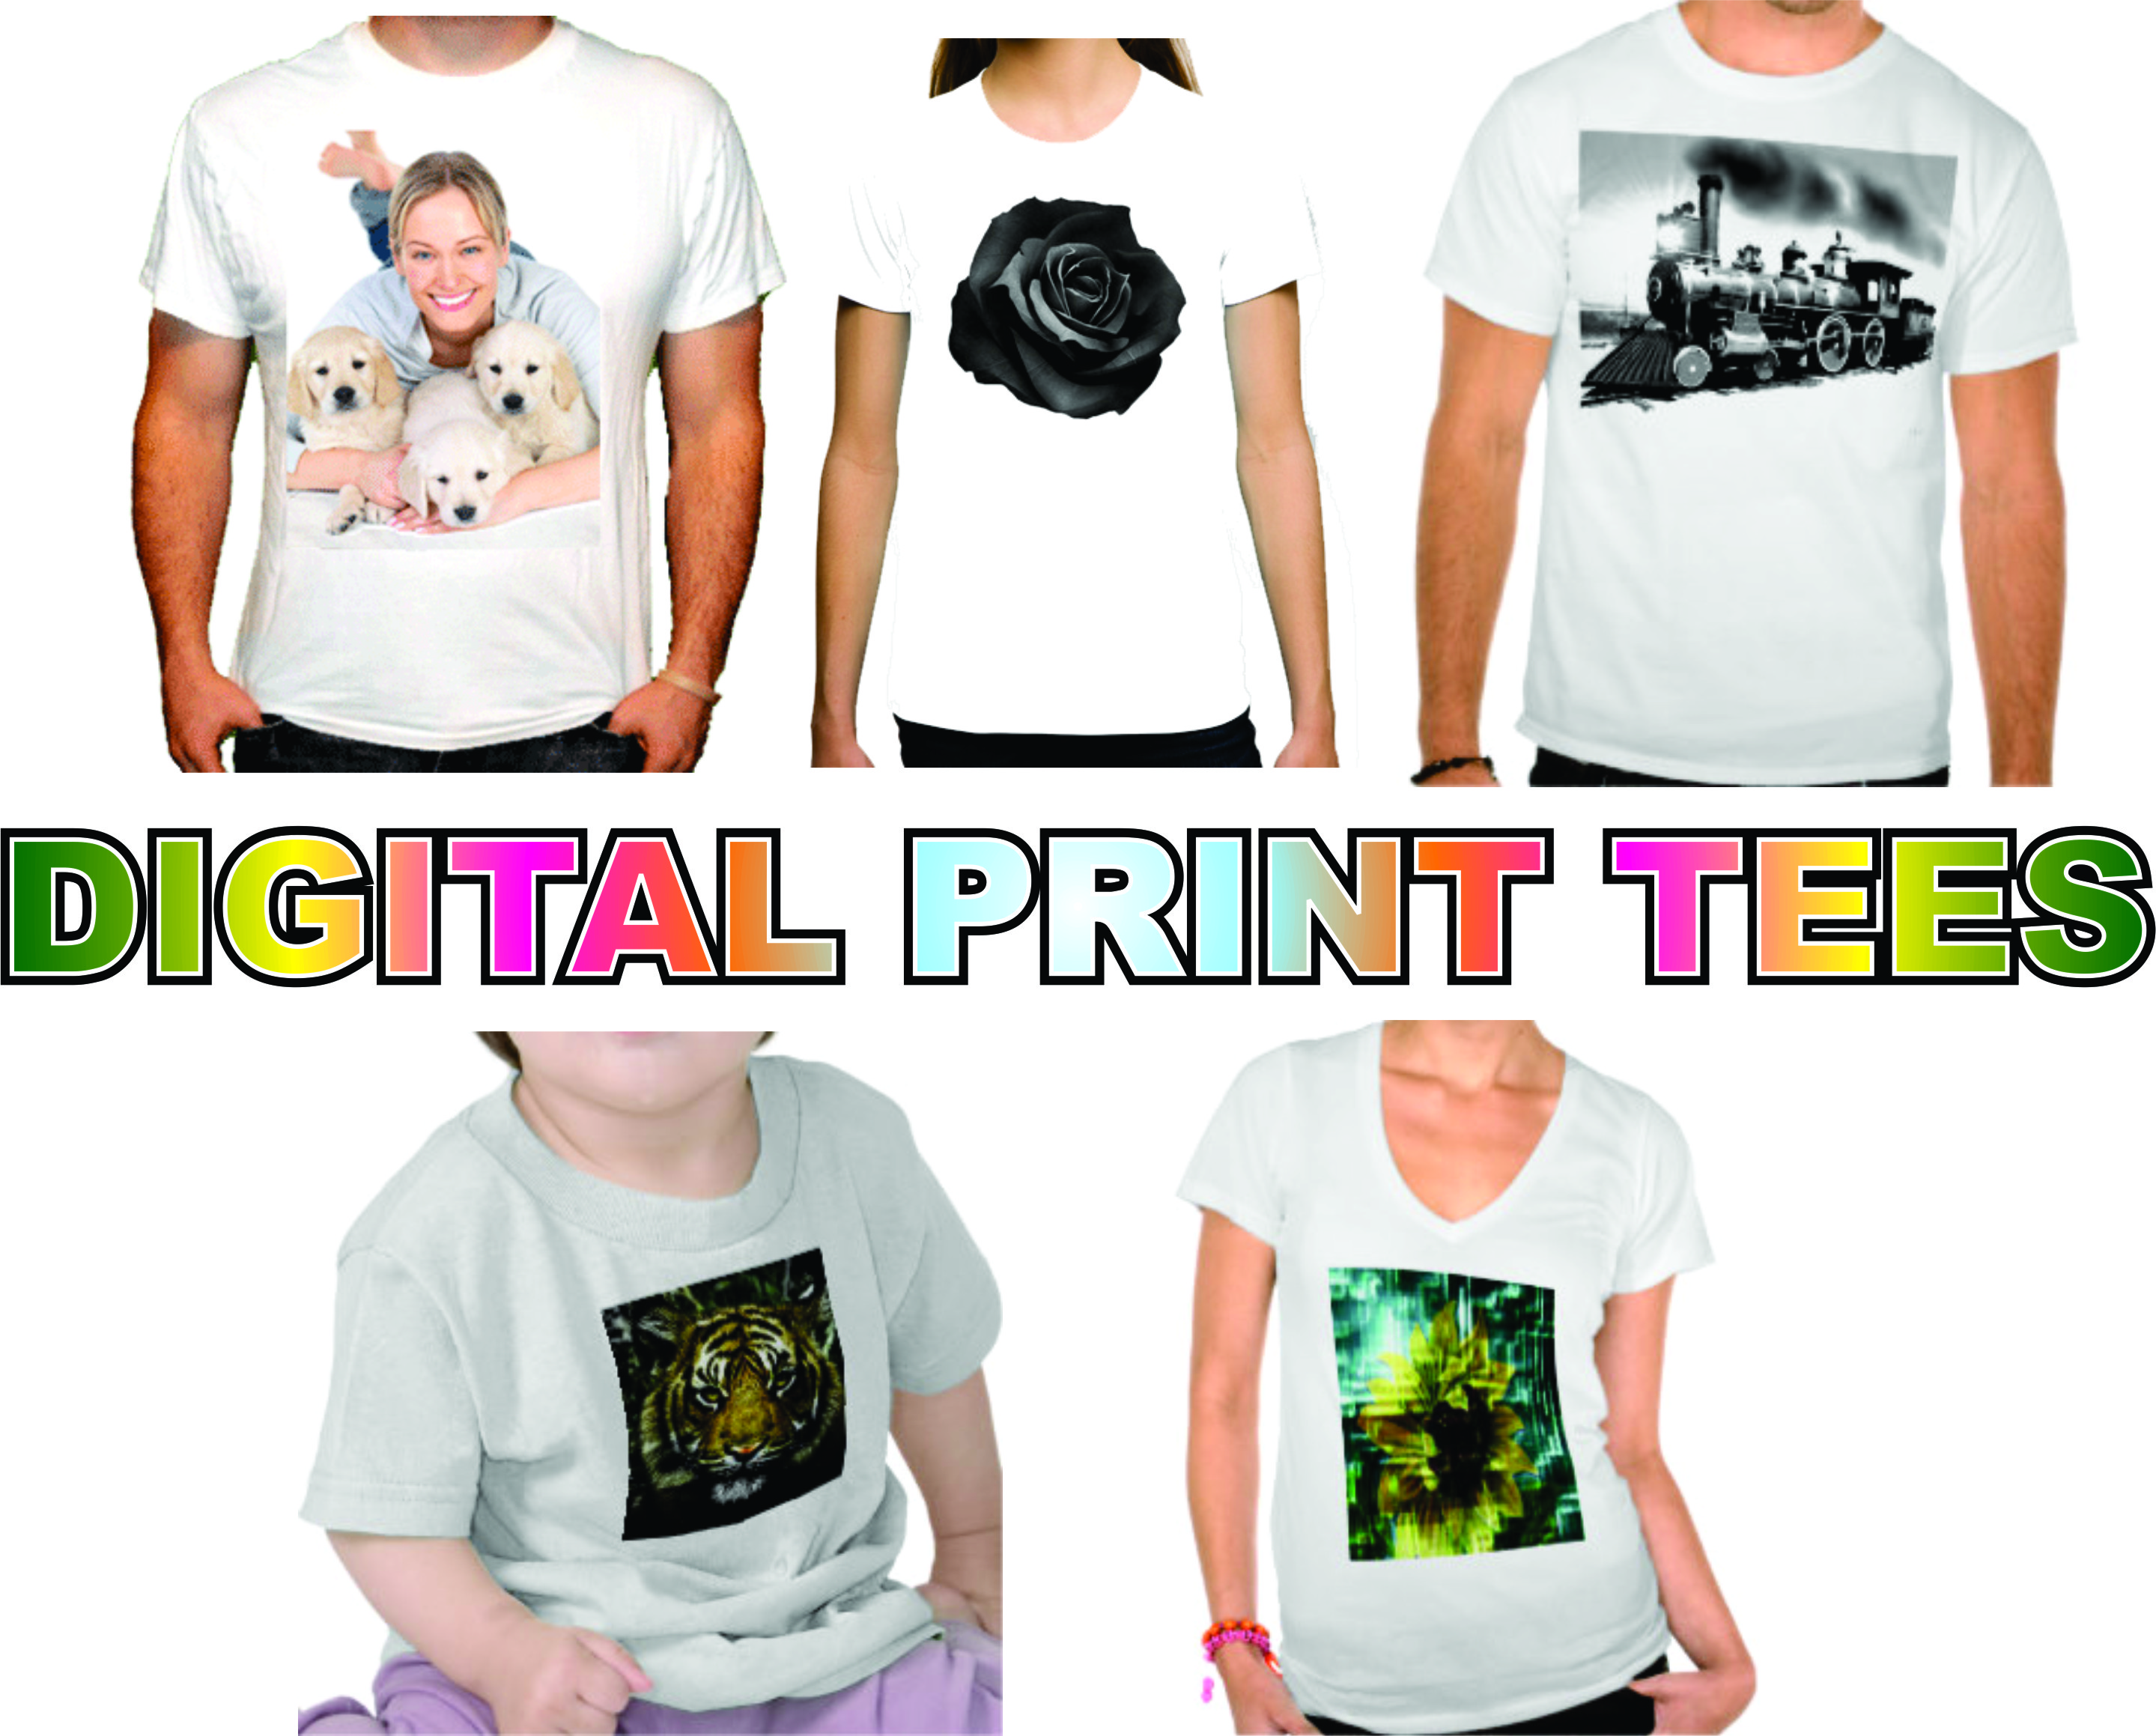 Digital Printing T Shirts Near Me - raveitsafe